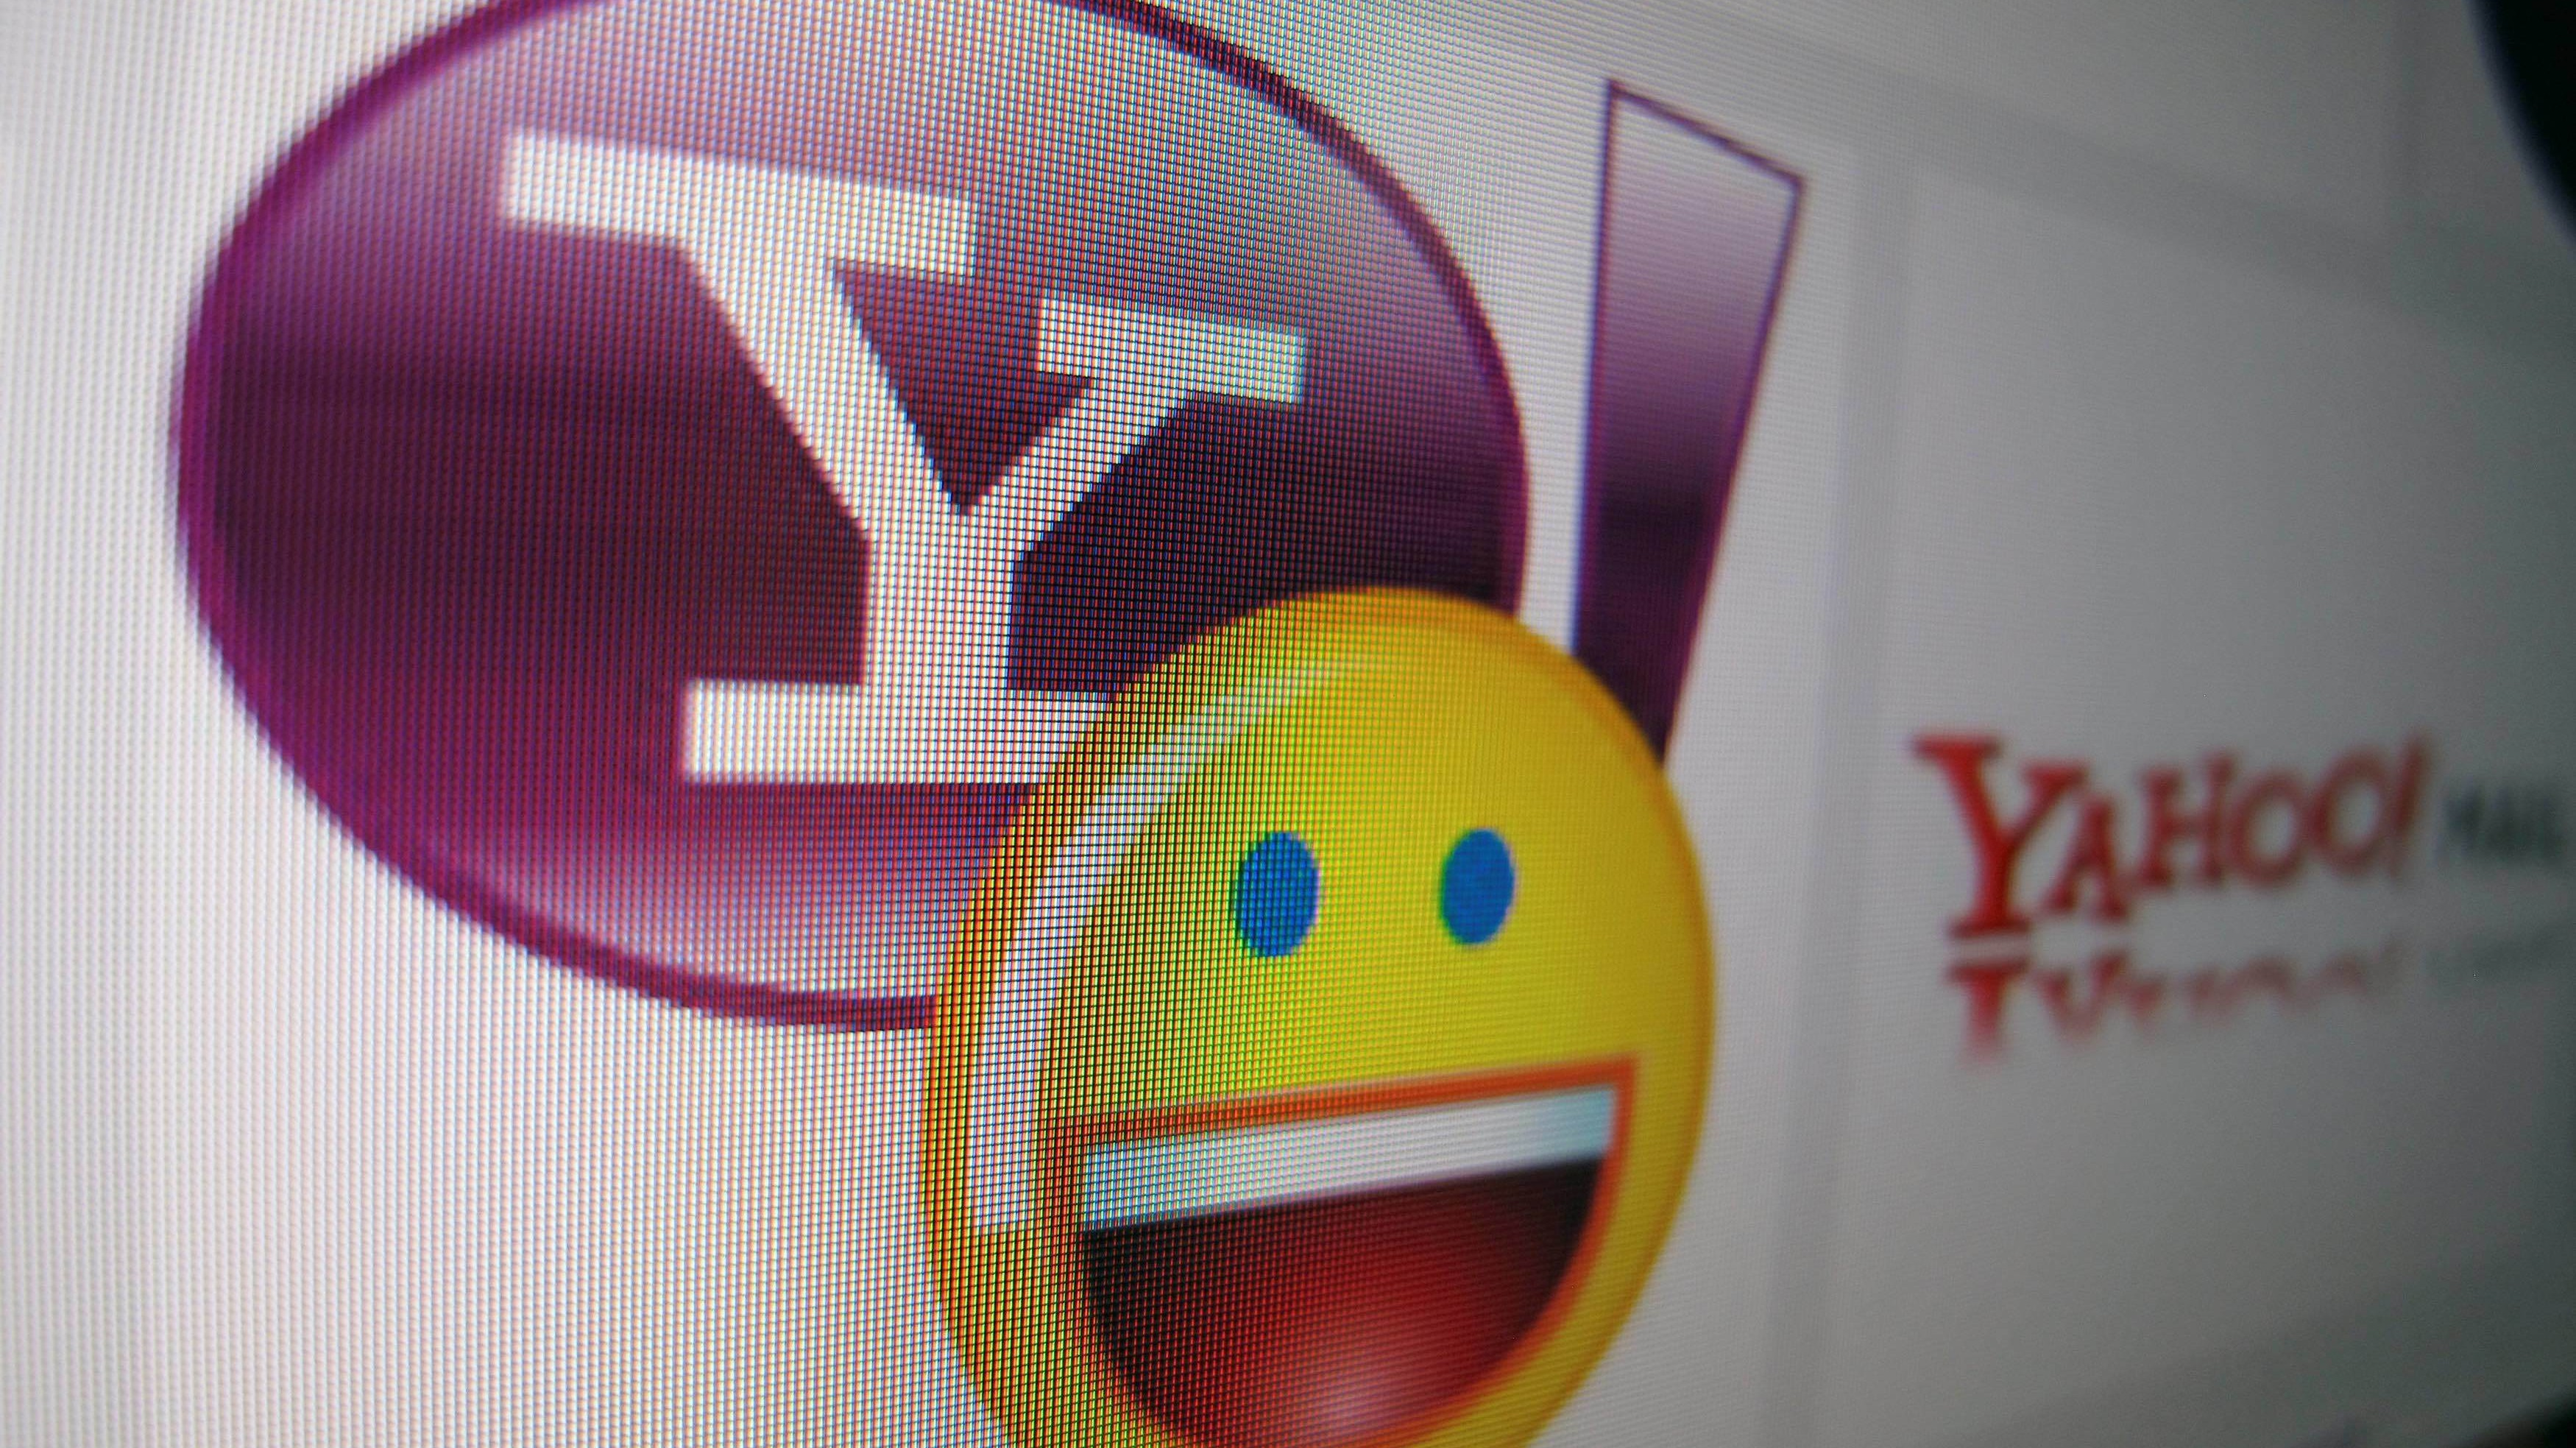 Yahoo hasn't told 200 million users their accounts were hacked